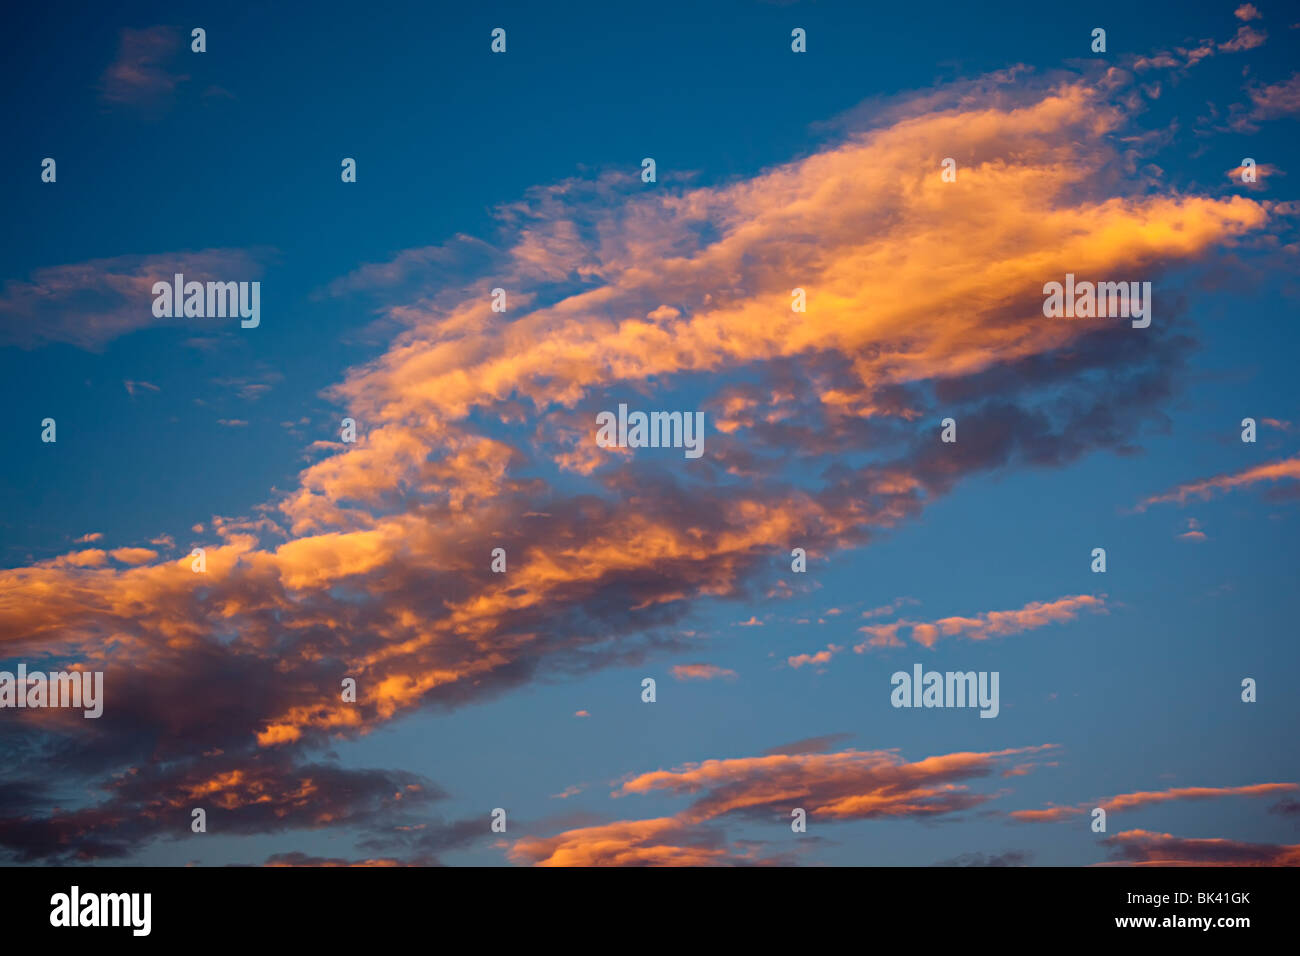 Pink clouds in sunset against blue sky - Stock Image